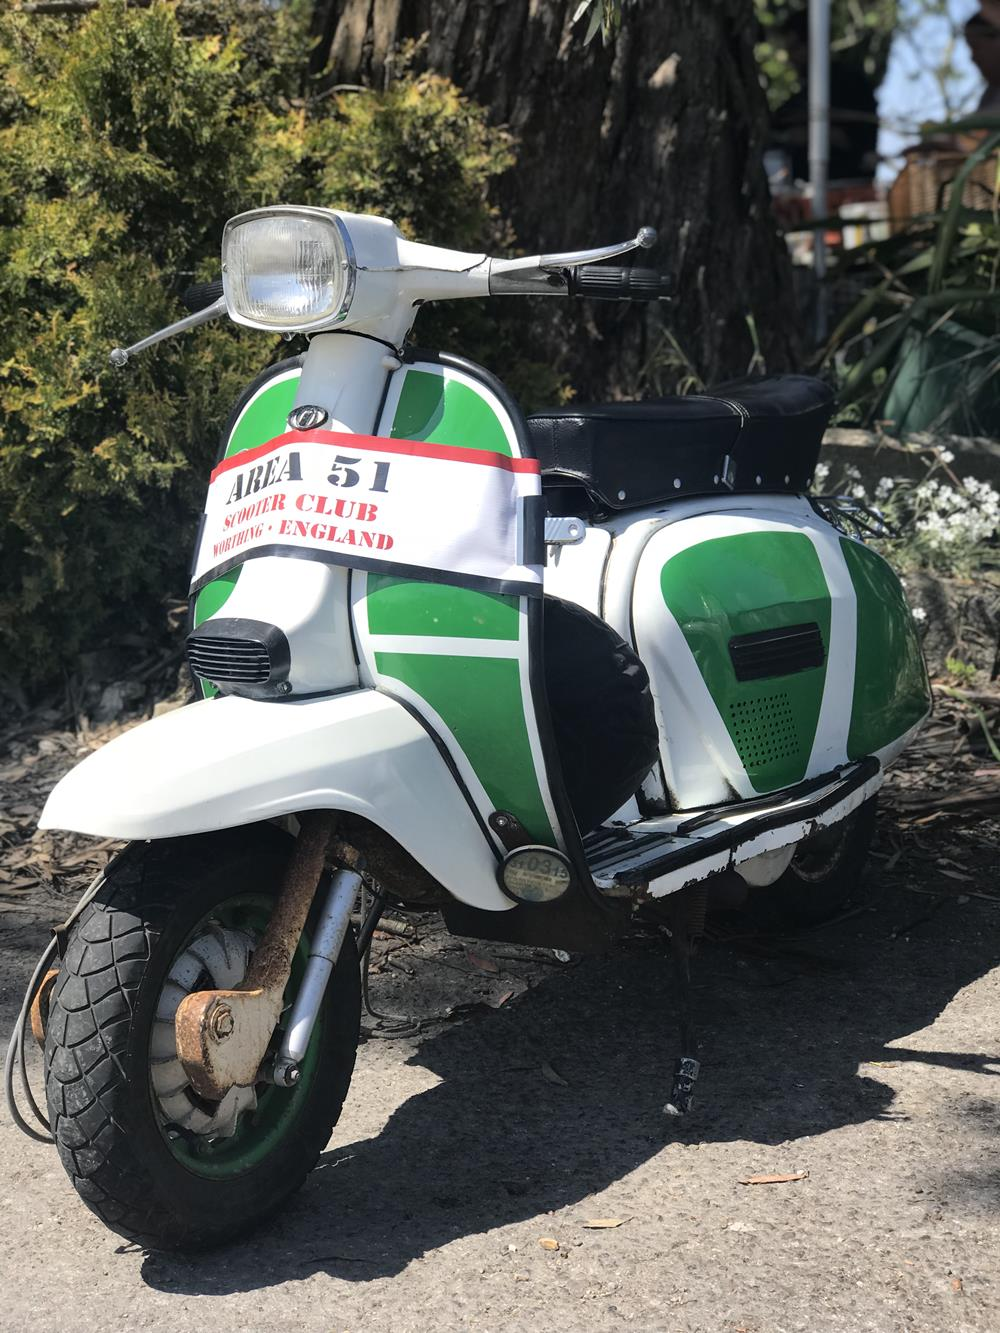 Green and white Lambretta scooter from Area 51 Scooter Club